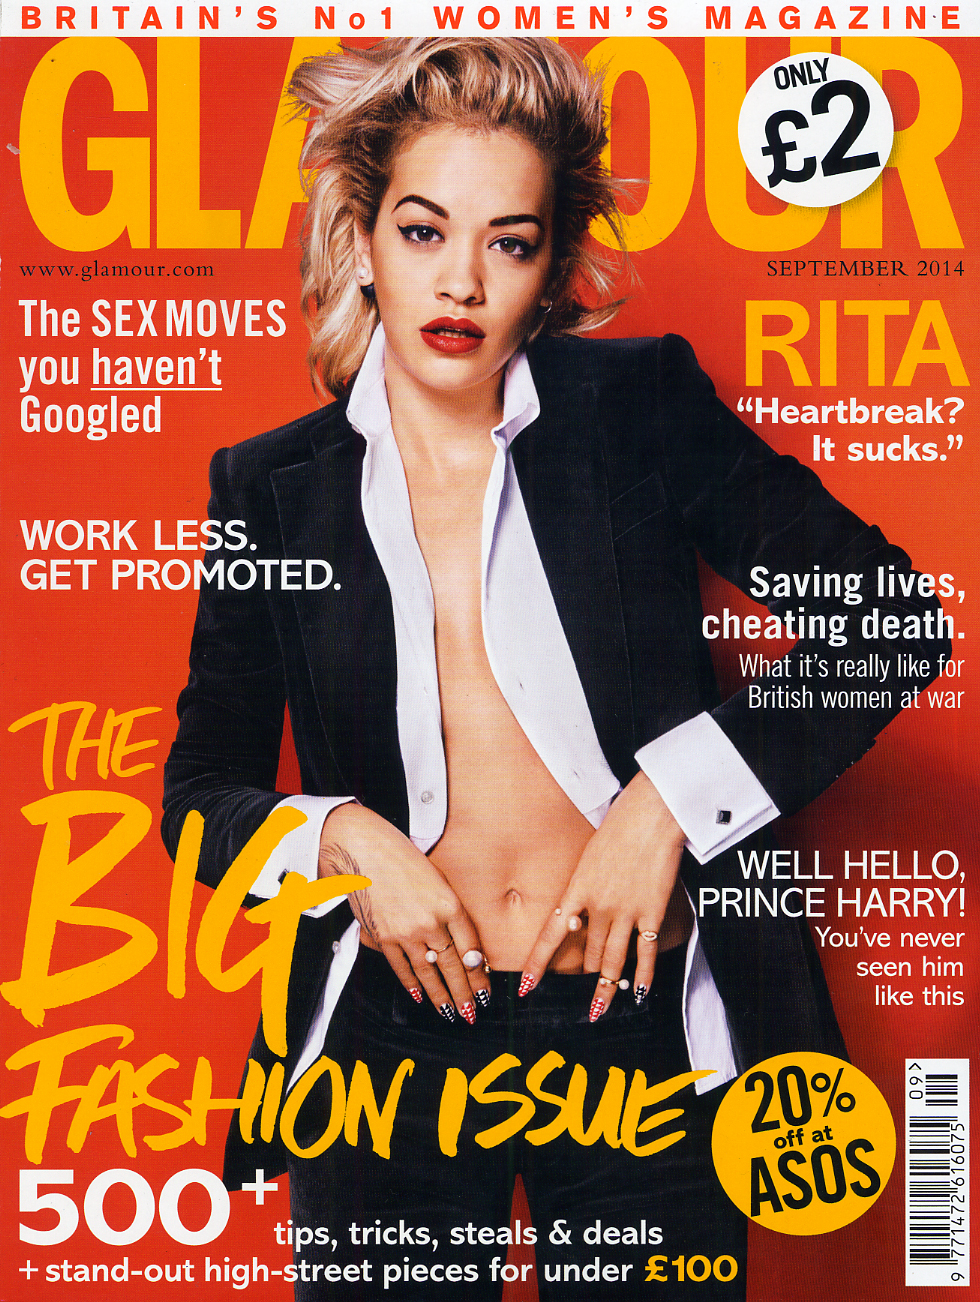 Glamour Cover Sep 14 .jpg